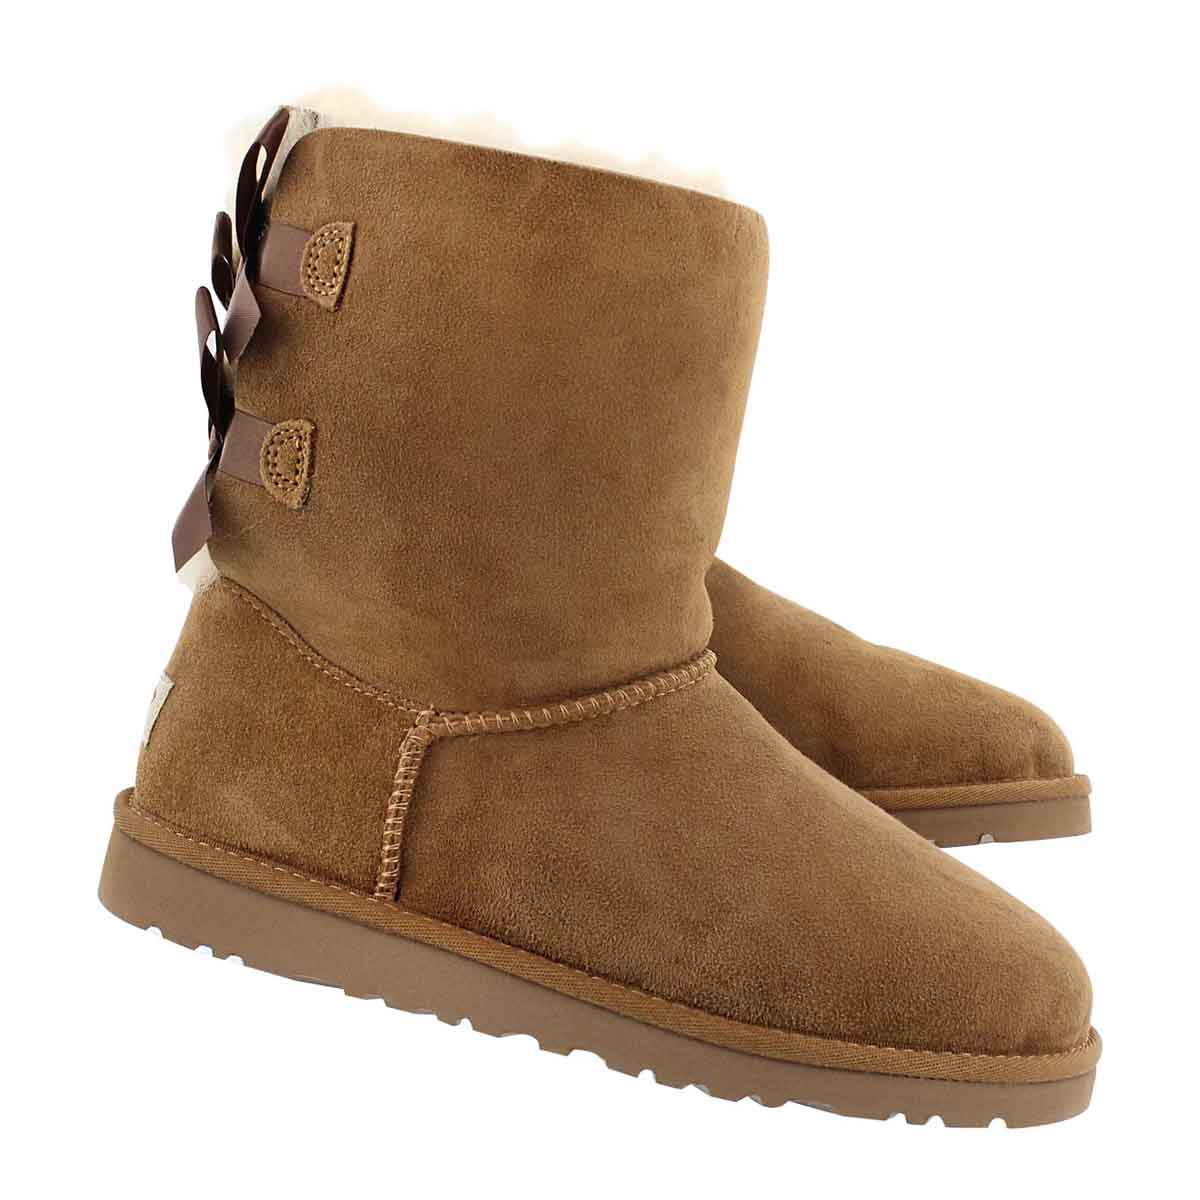 Grls Bailey Bow chestnut sheepskin boot